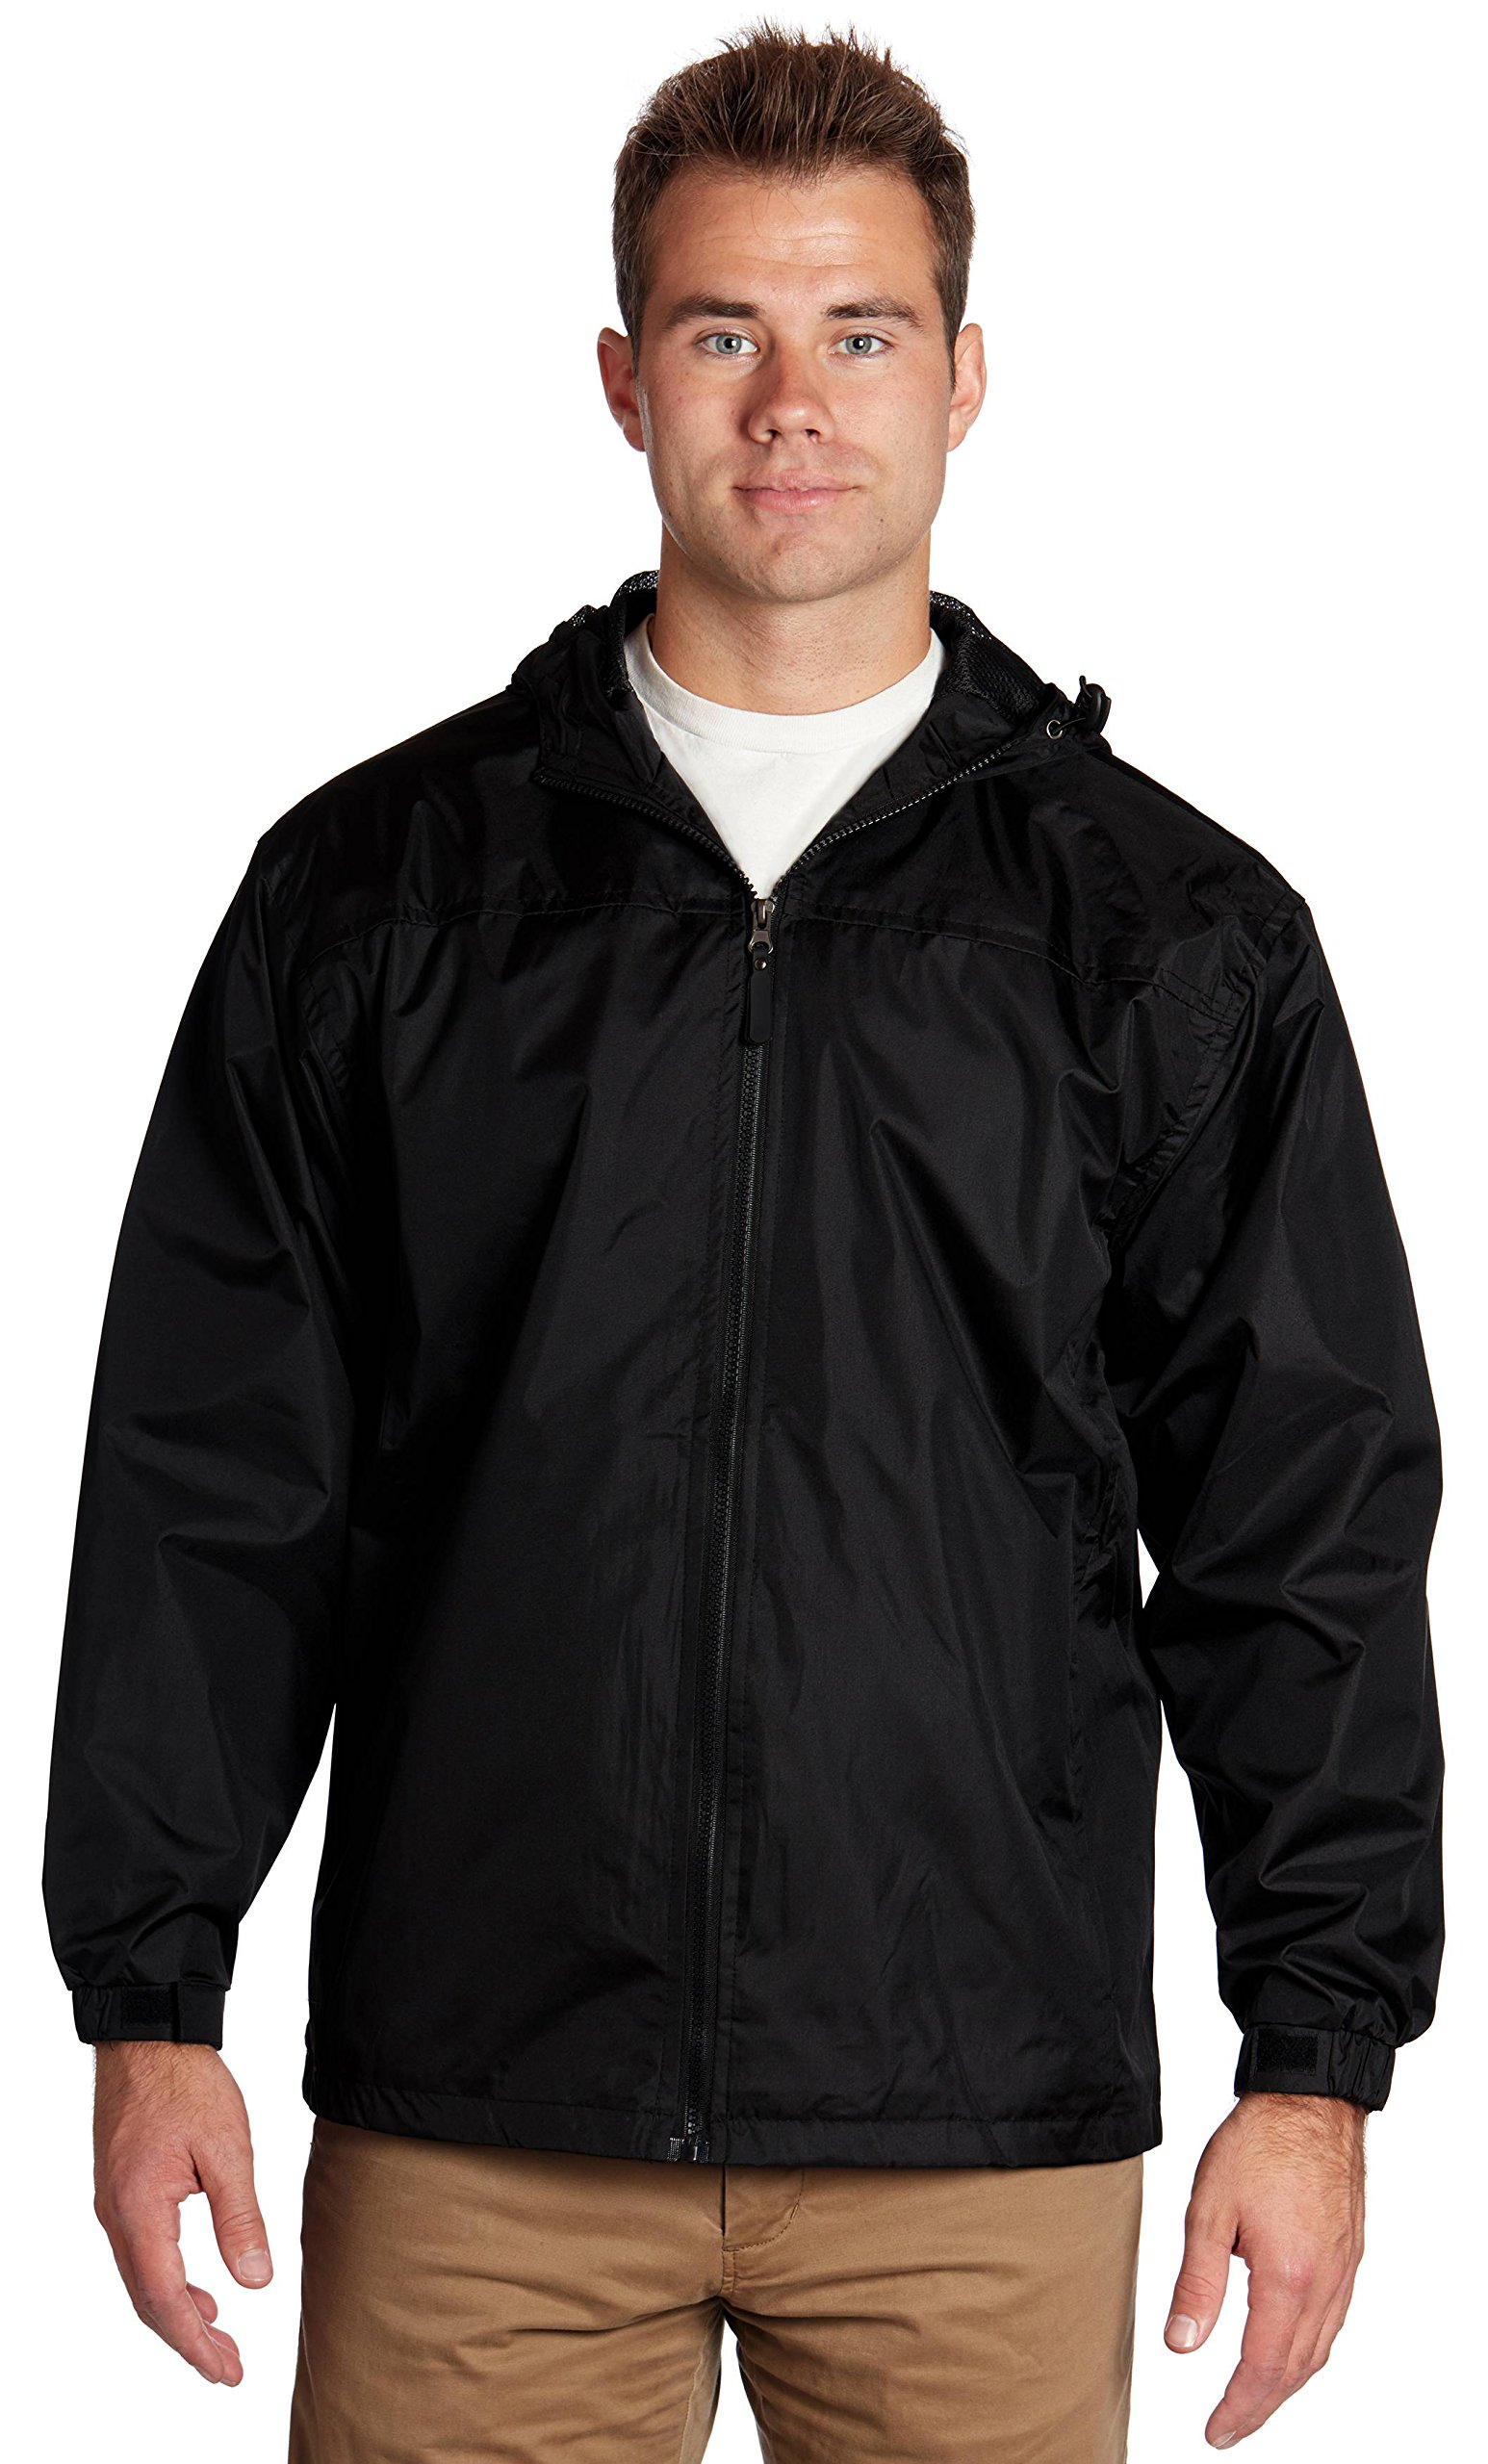 Wholesale Unisex Polyester Hooded Lined Windbreaker Jackets - Black, 2X-Large by Equipment De Sport USA